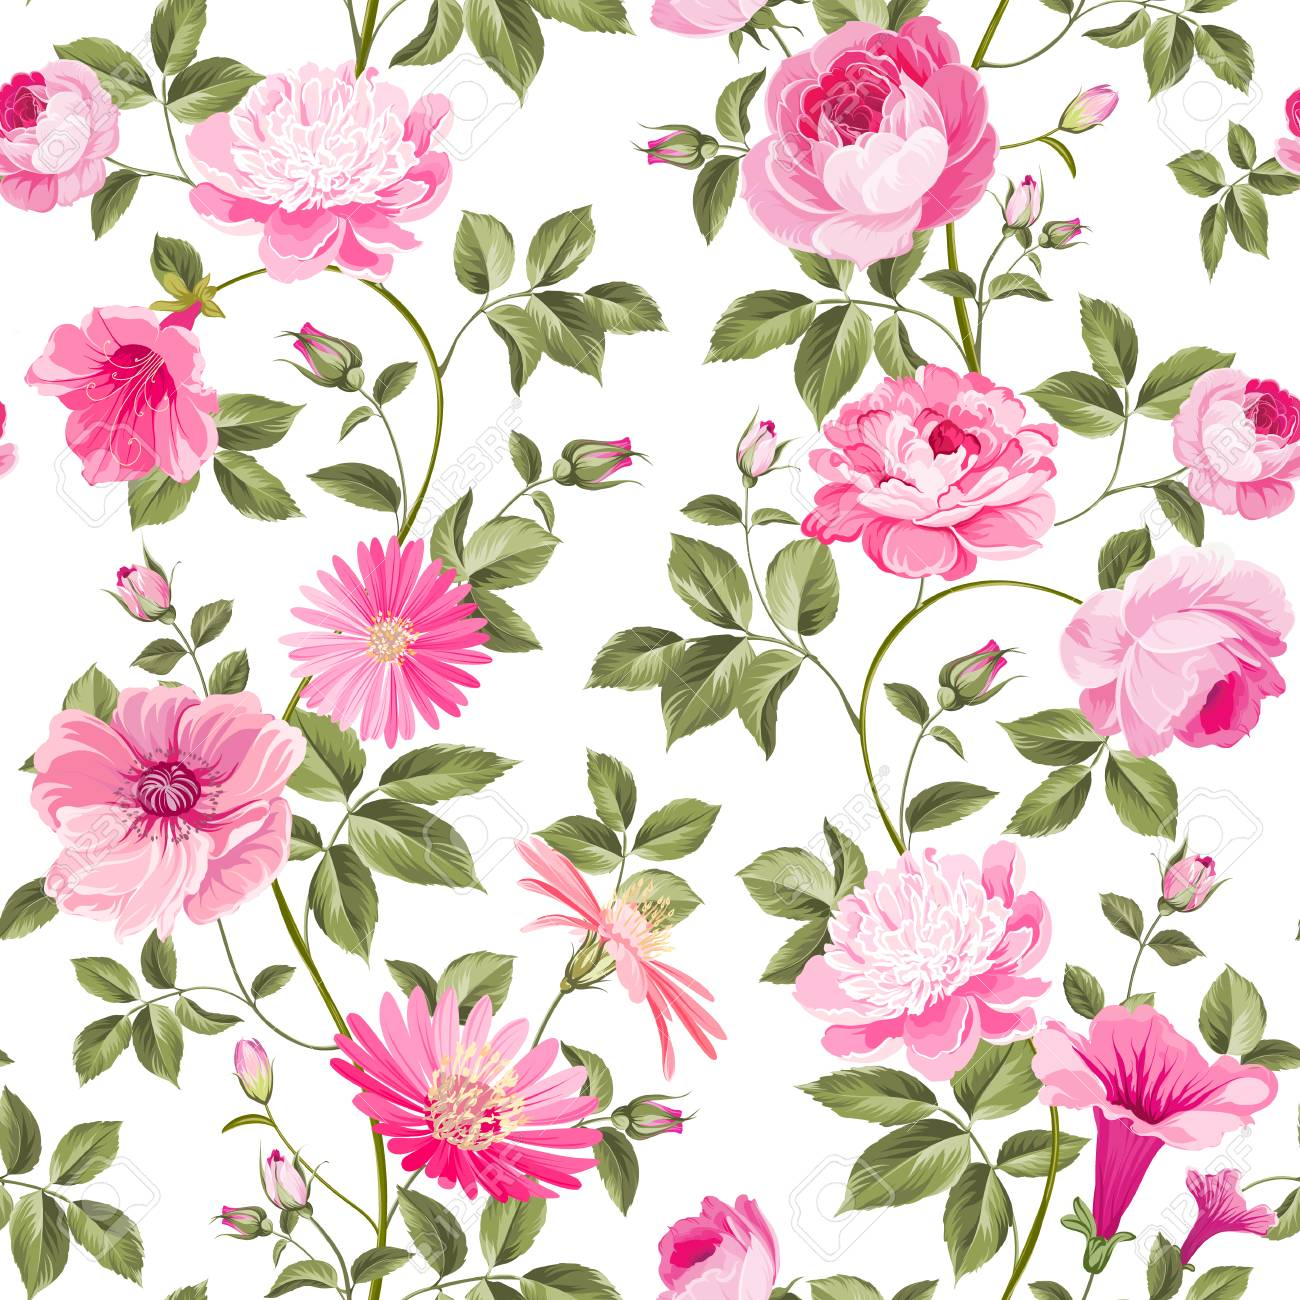 Red Roses Pattern For Wallpaper Design Retro Floral Seamless